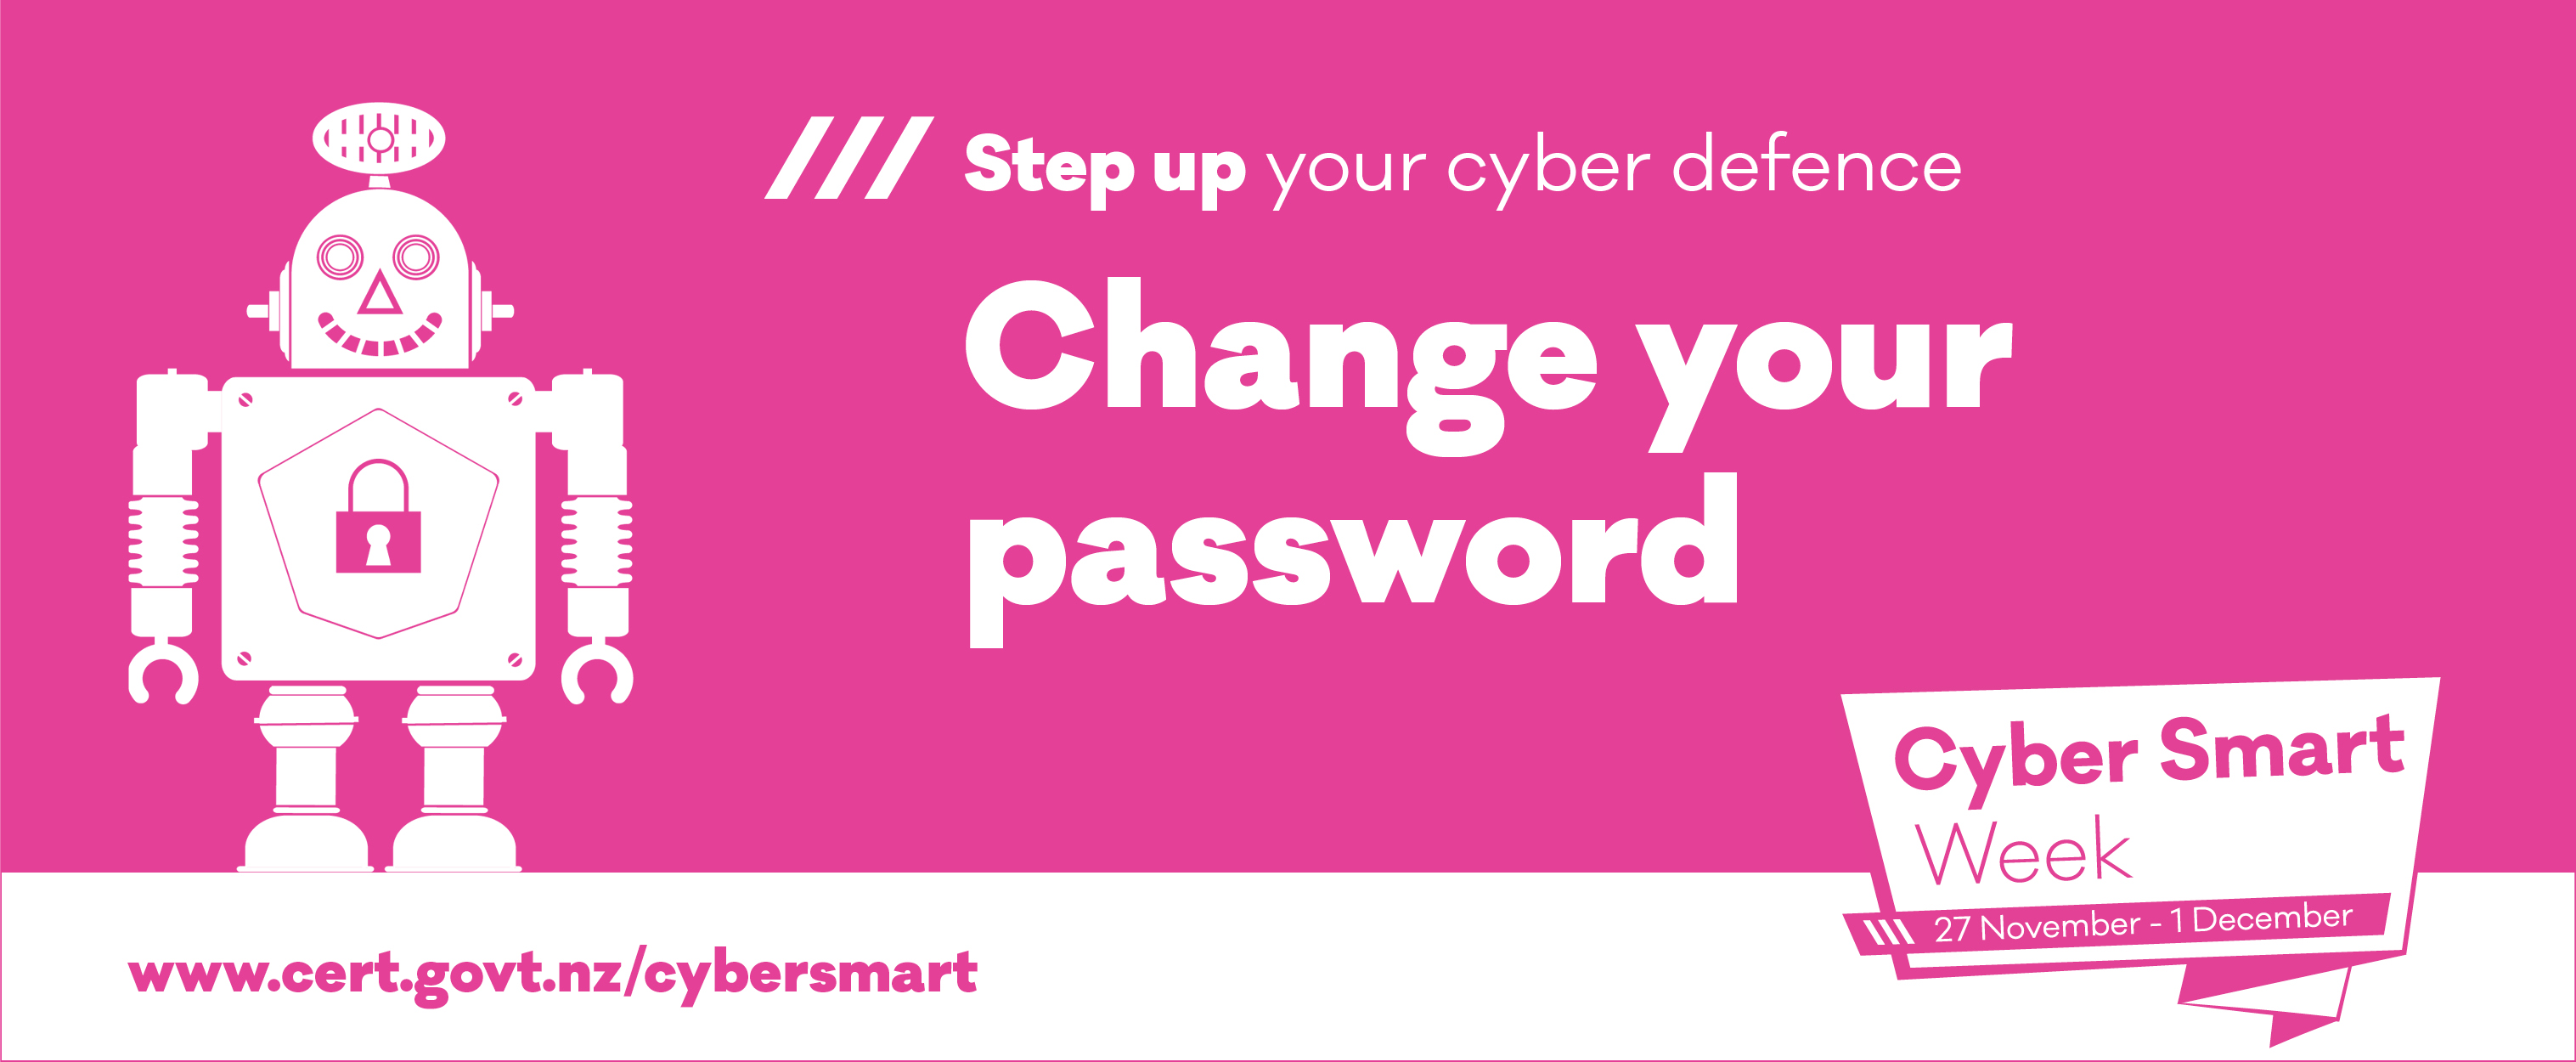 phew cyber smart week 2017 change password